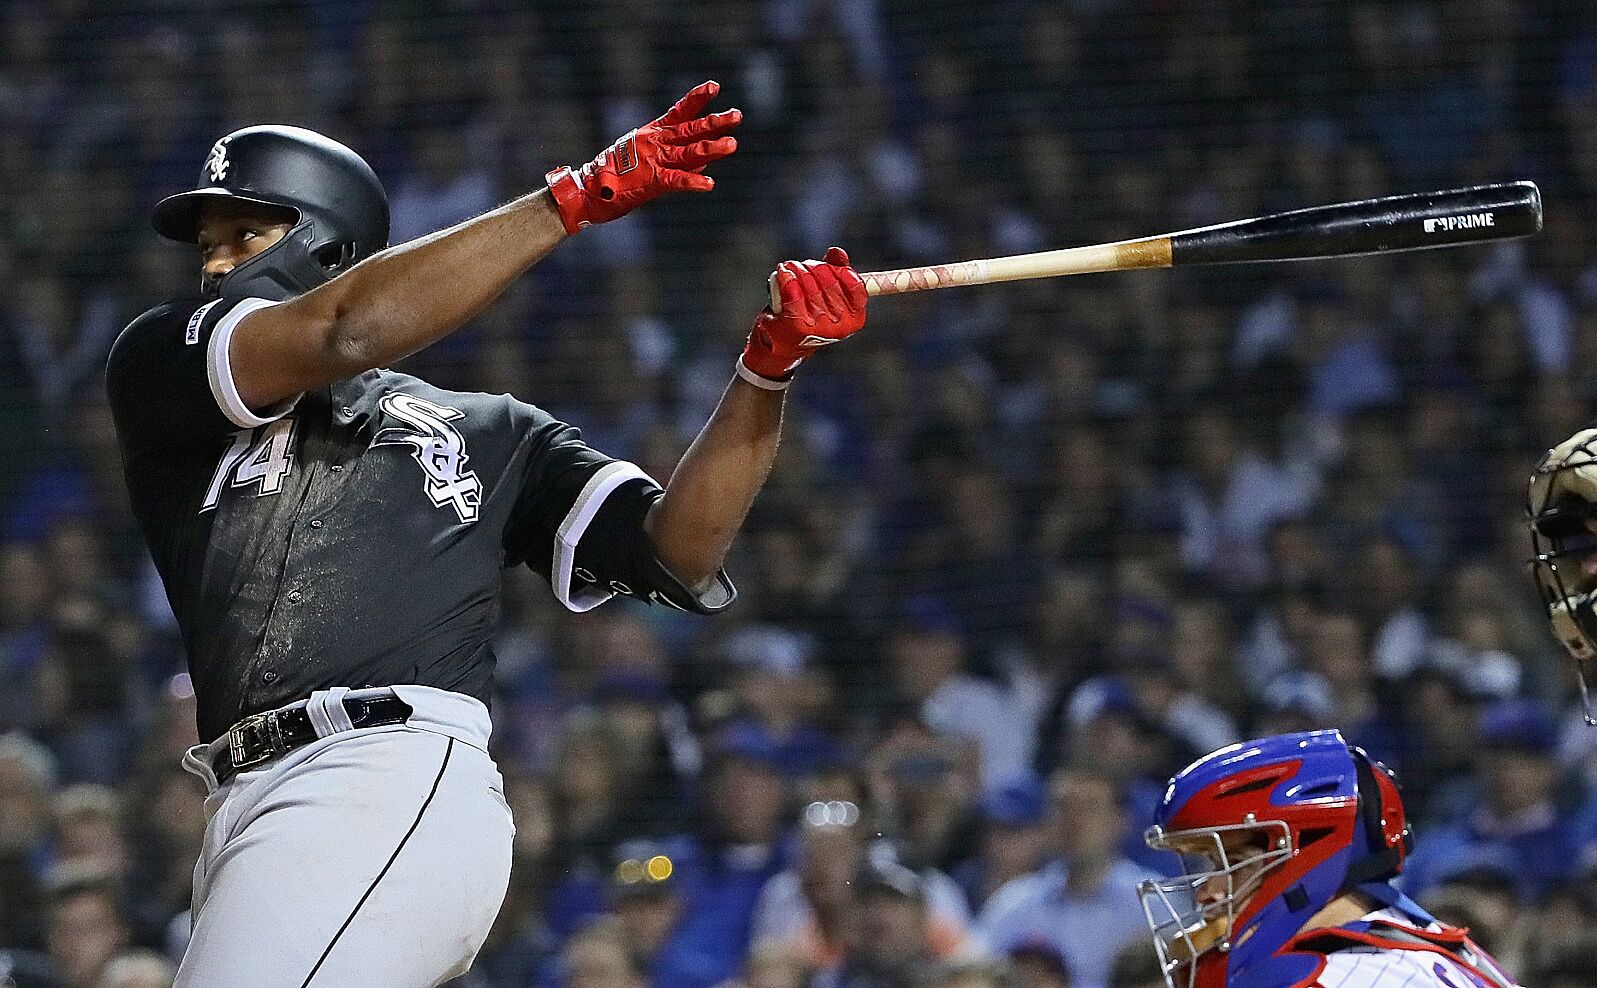 Chicago White Sox: Three takeaways from Soxfest 2020